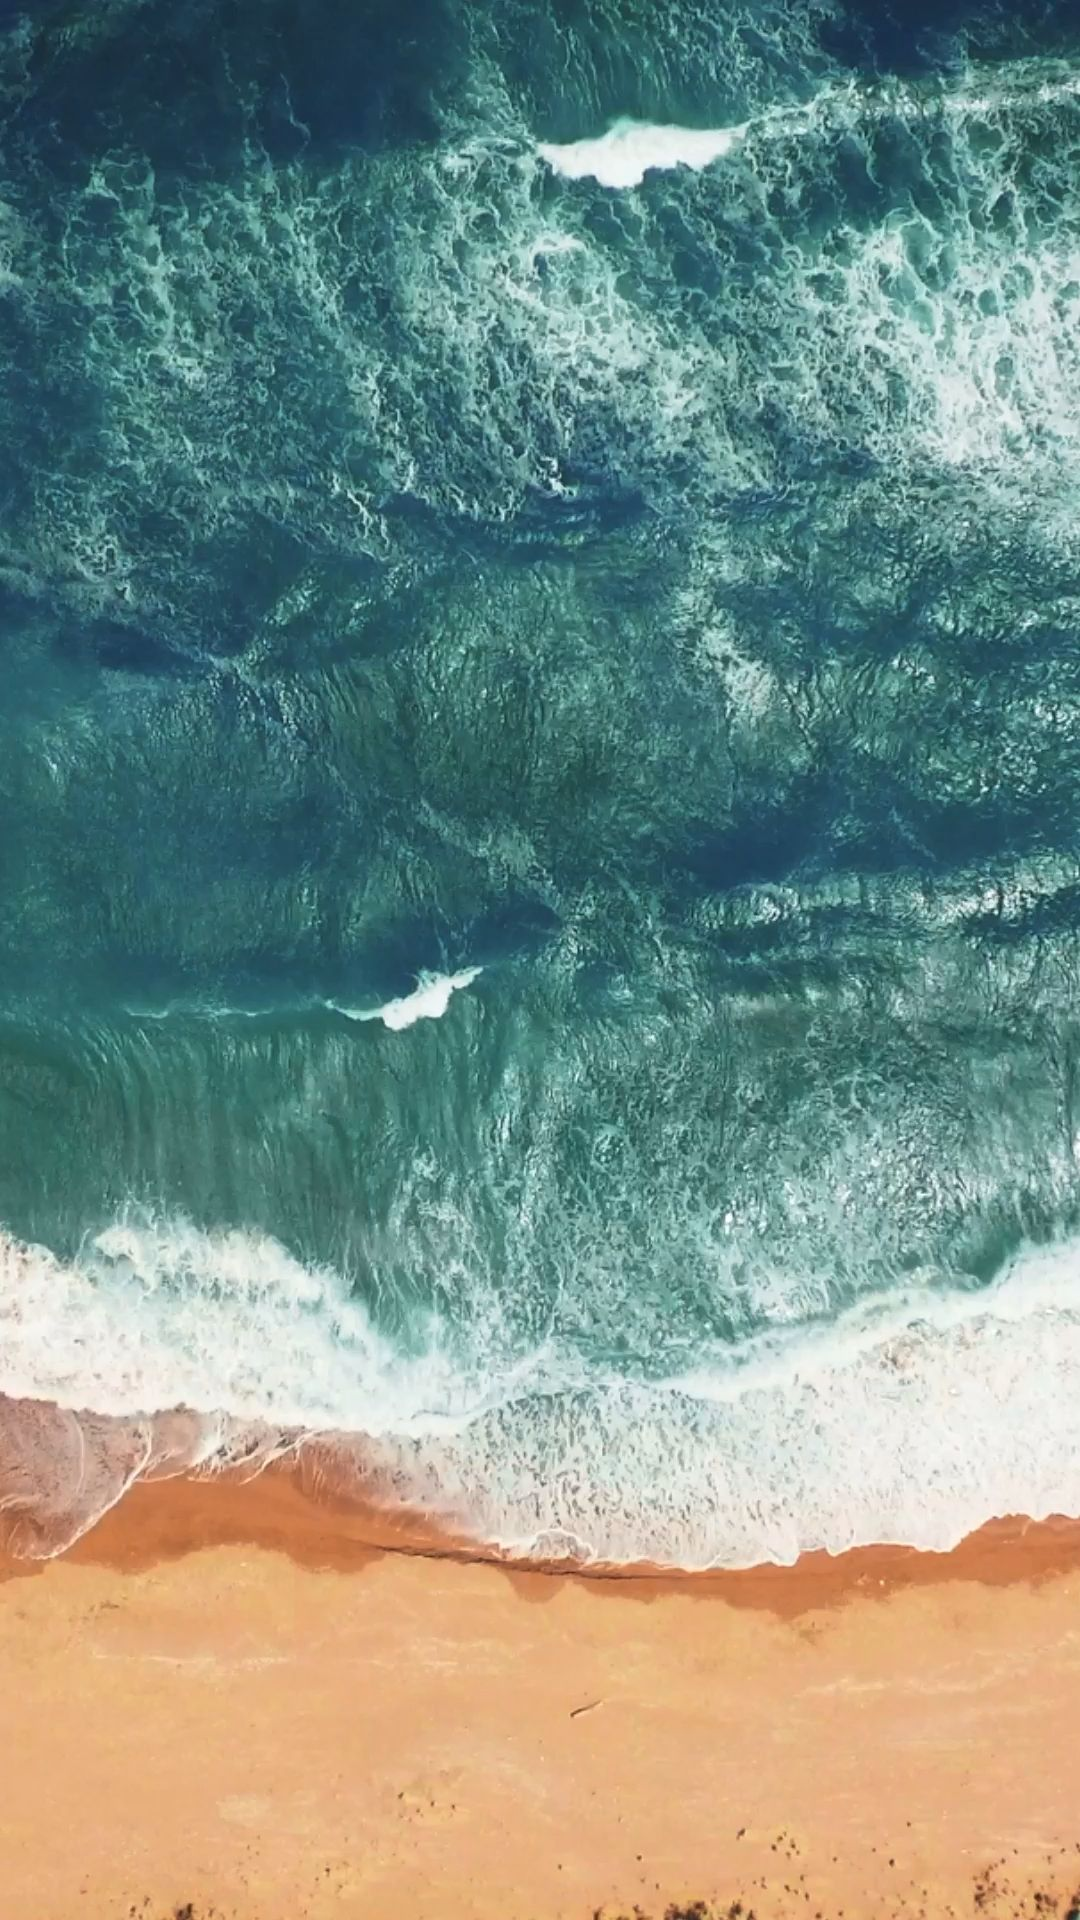 Live wallpaper for your iPhone XS from Everpix Live ocean